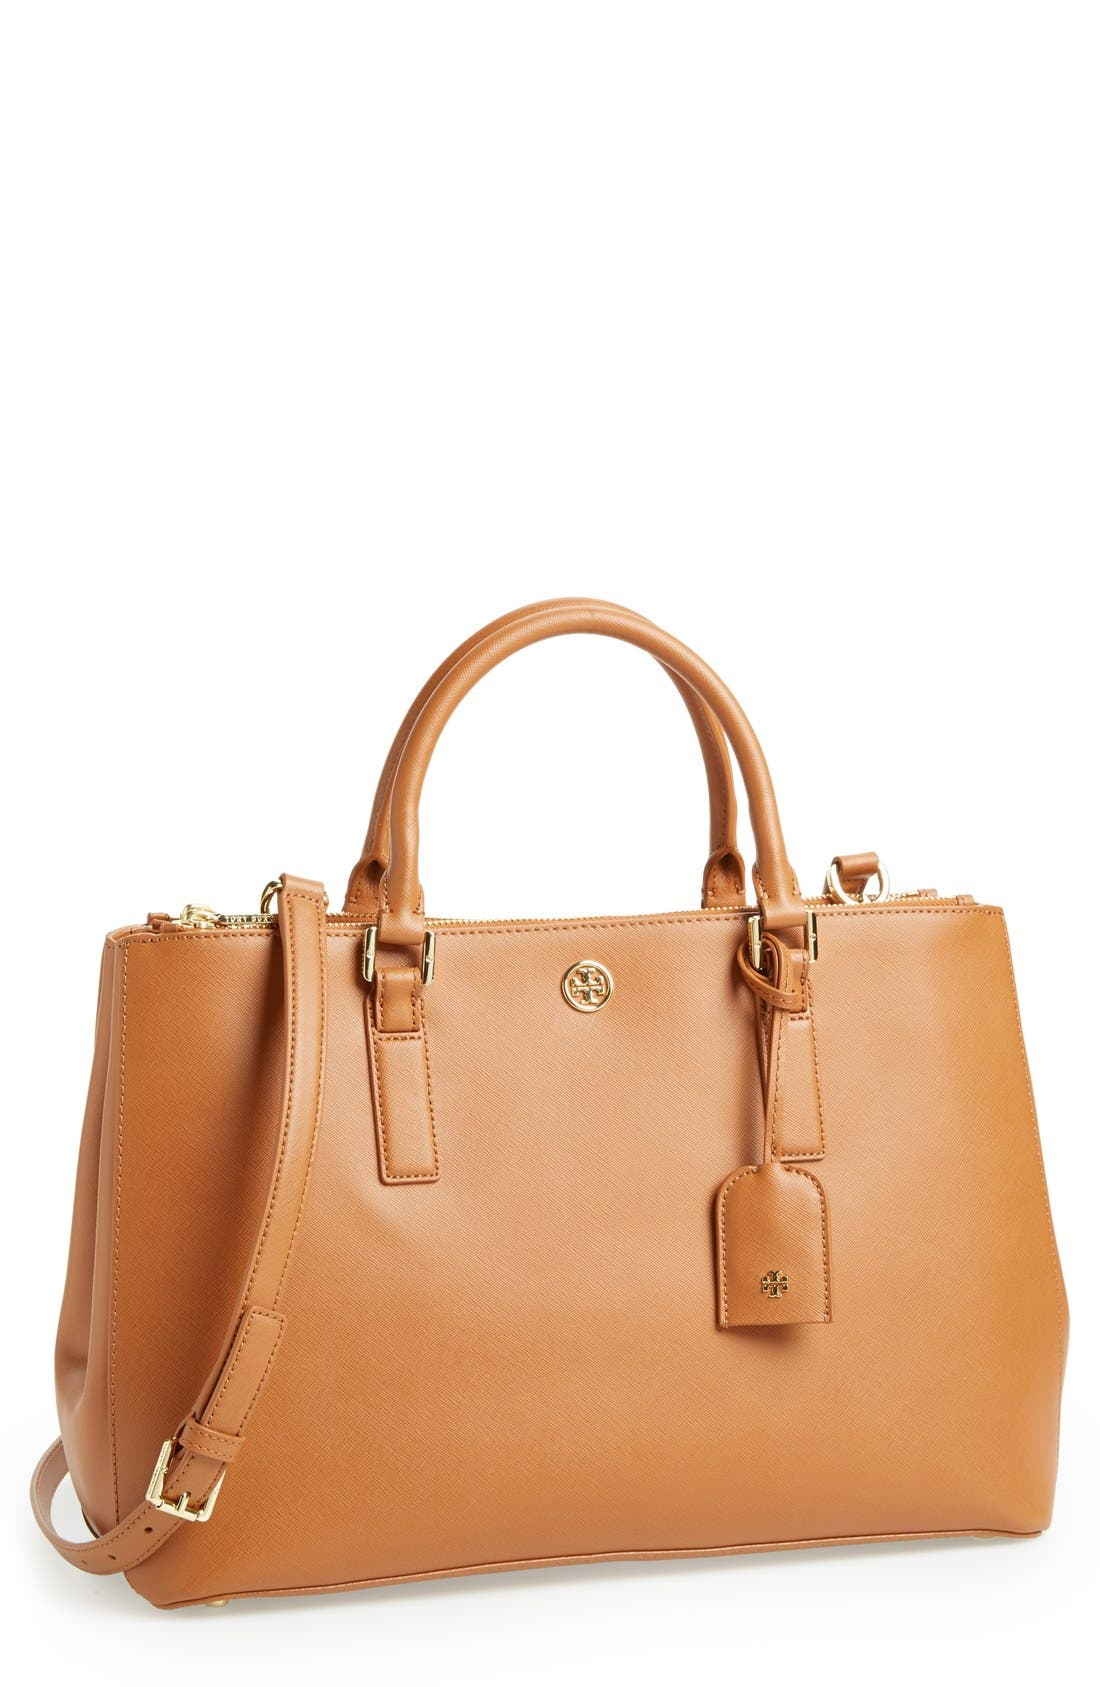 'Robinson' Double Zip Tote,                             Main thumbnail 1, color,                             Luggage